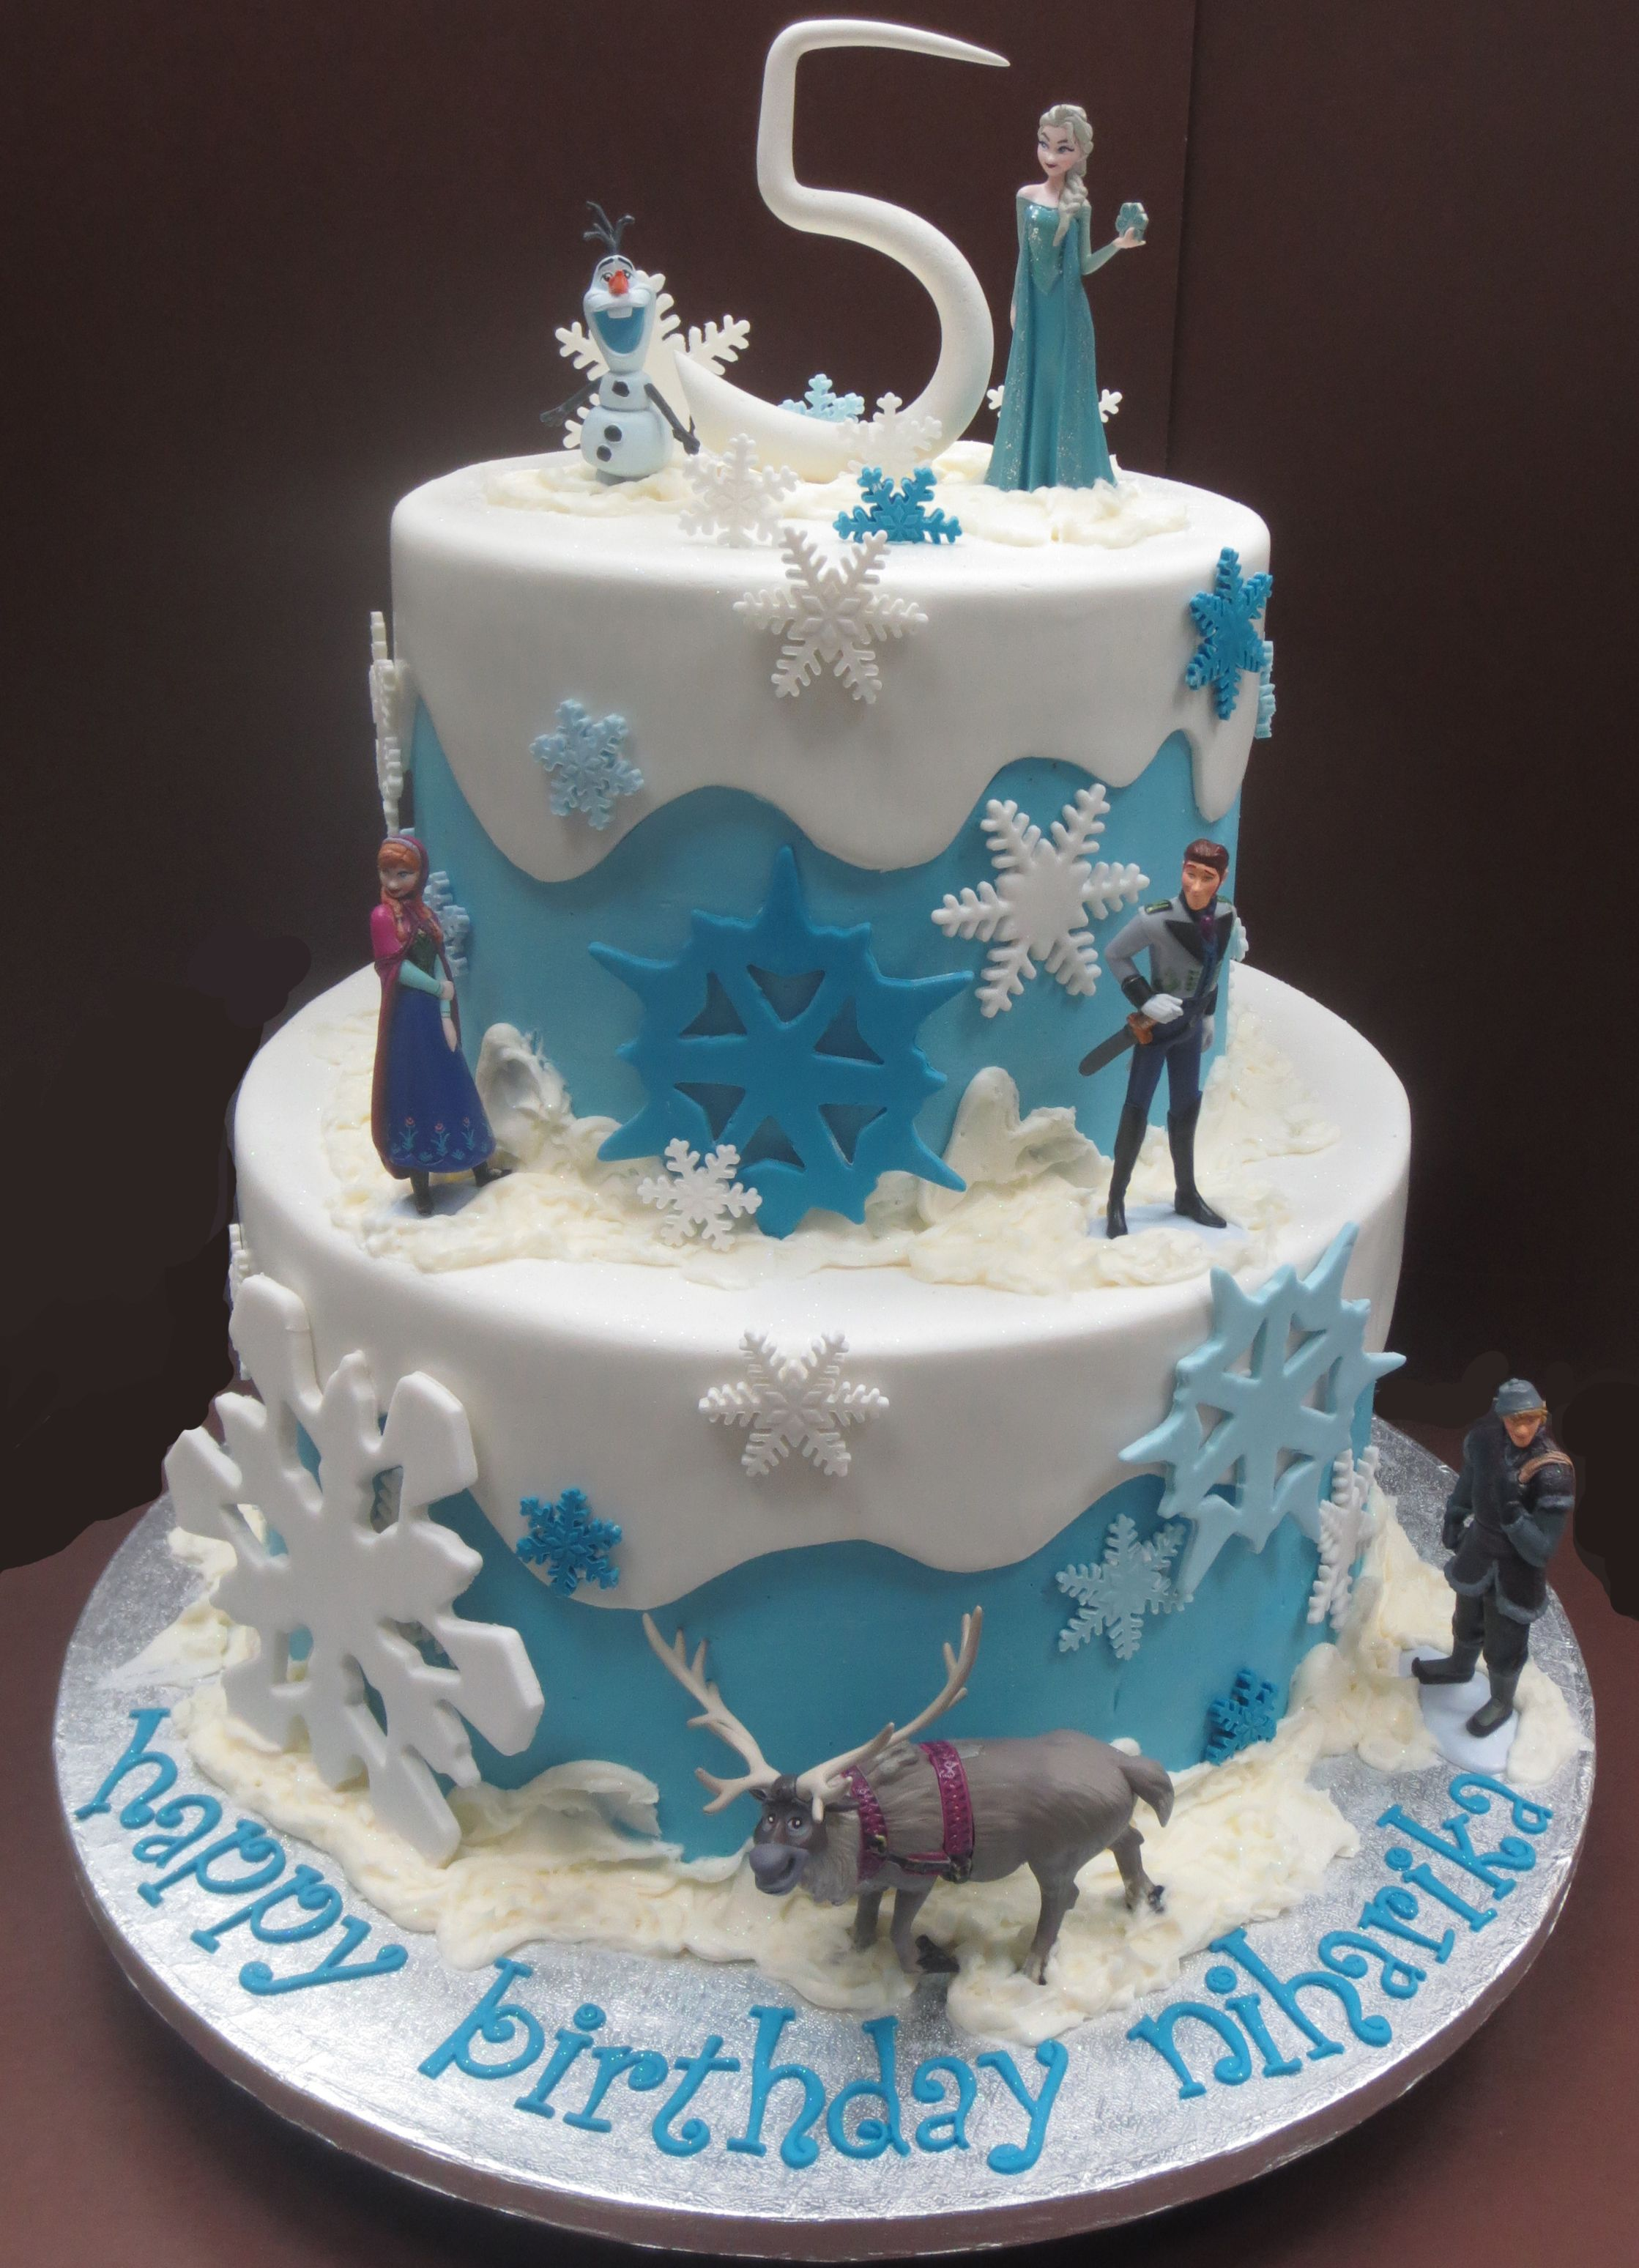 Cake Designs Of Frozen : Frozen cake - my daughter would love this. She is a huge ...